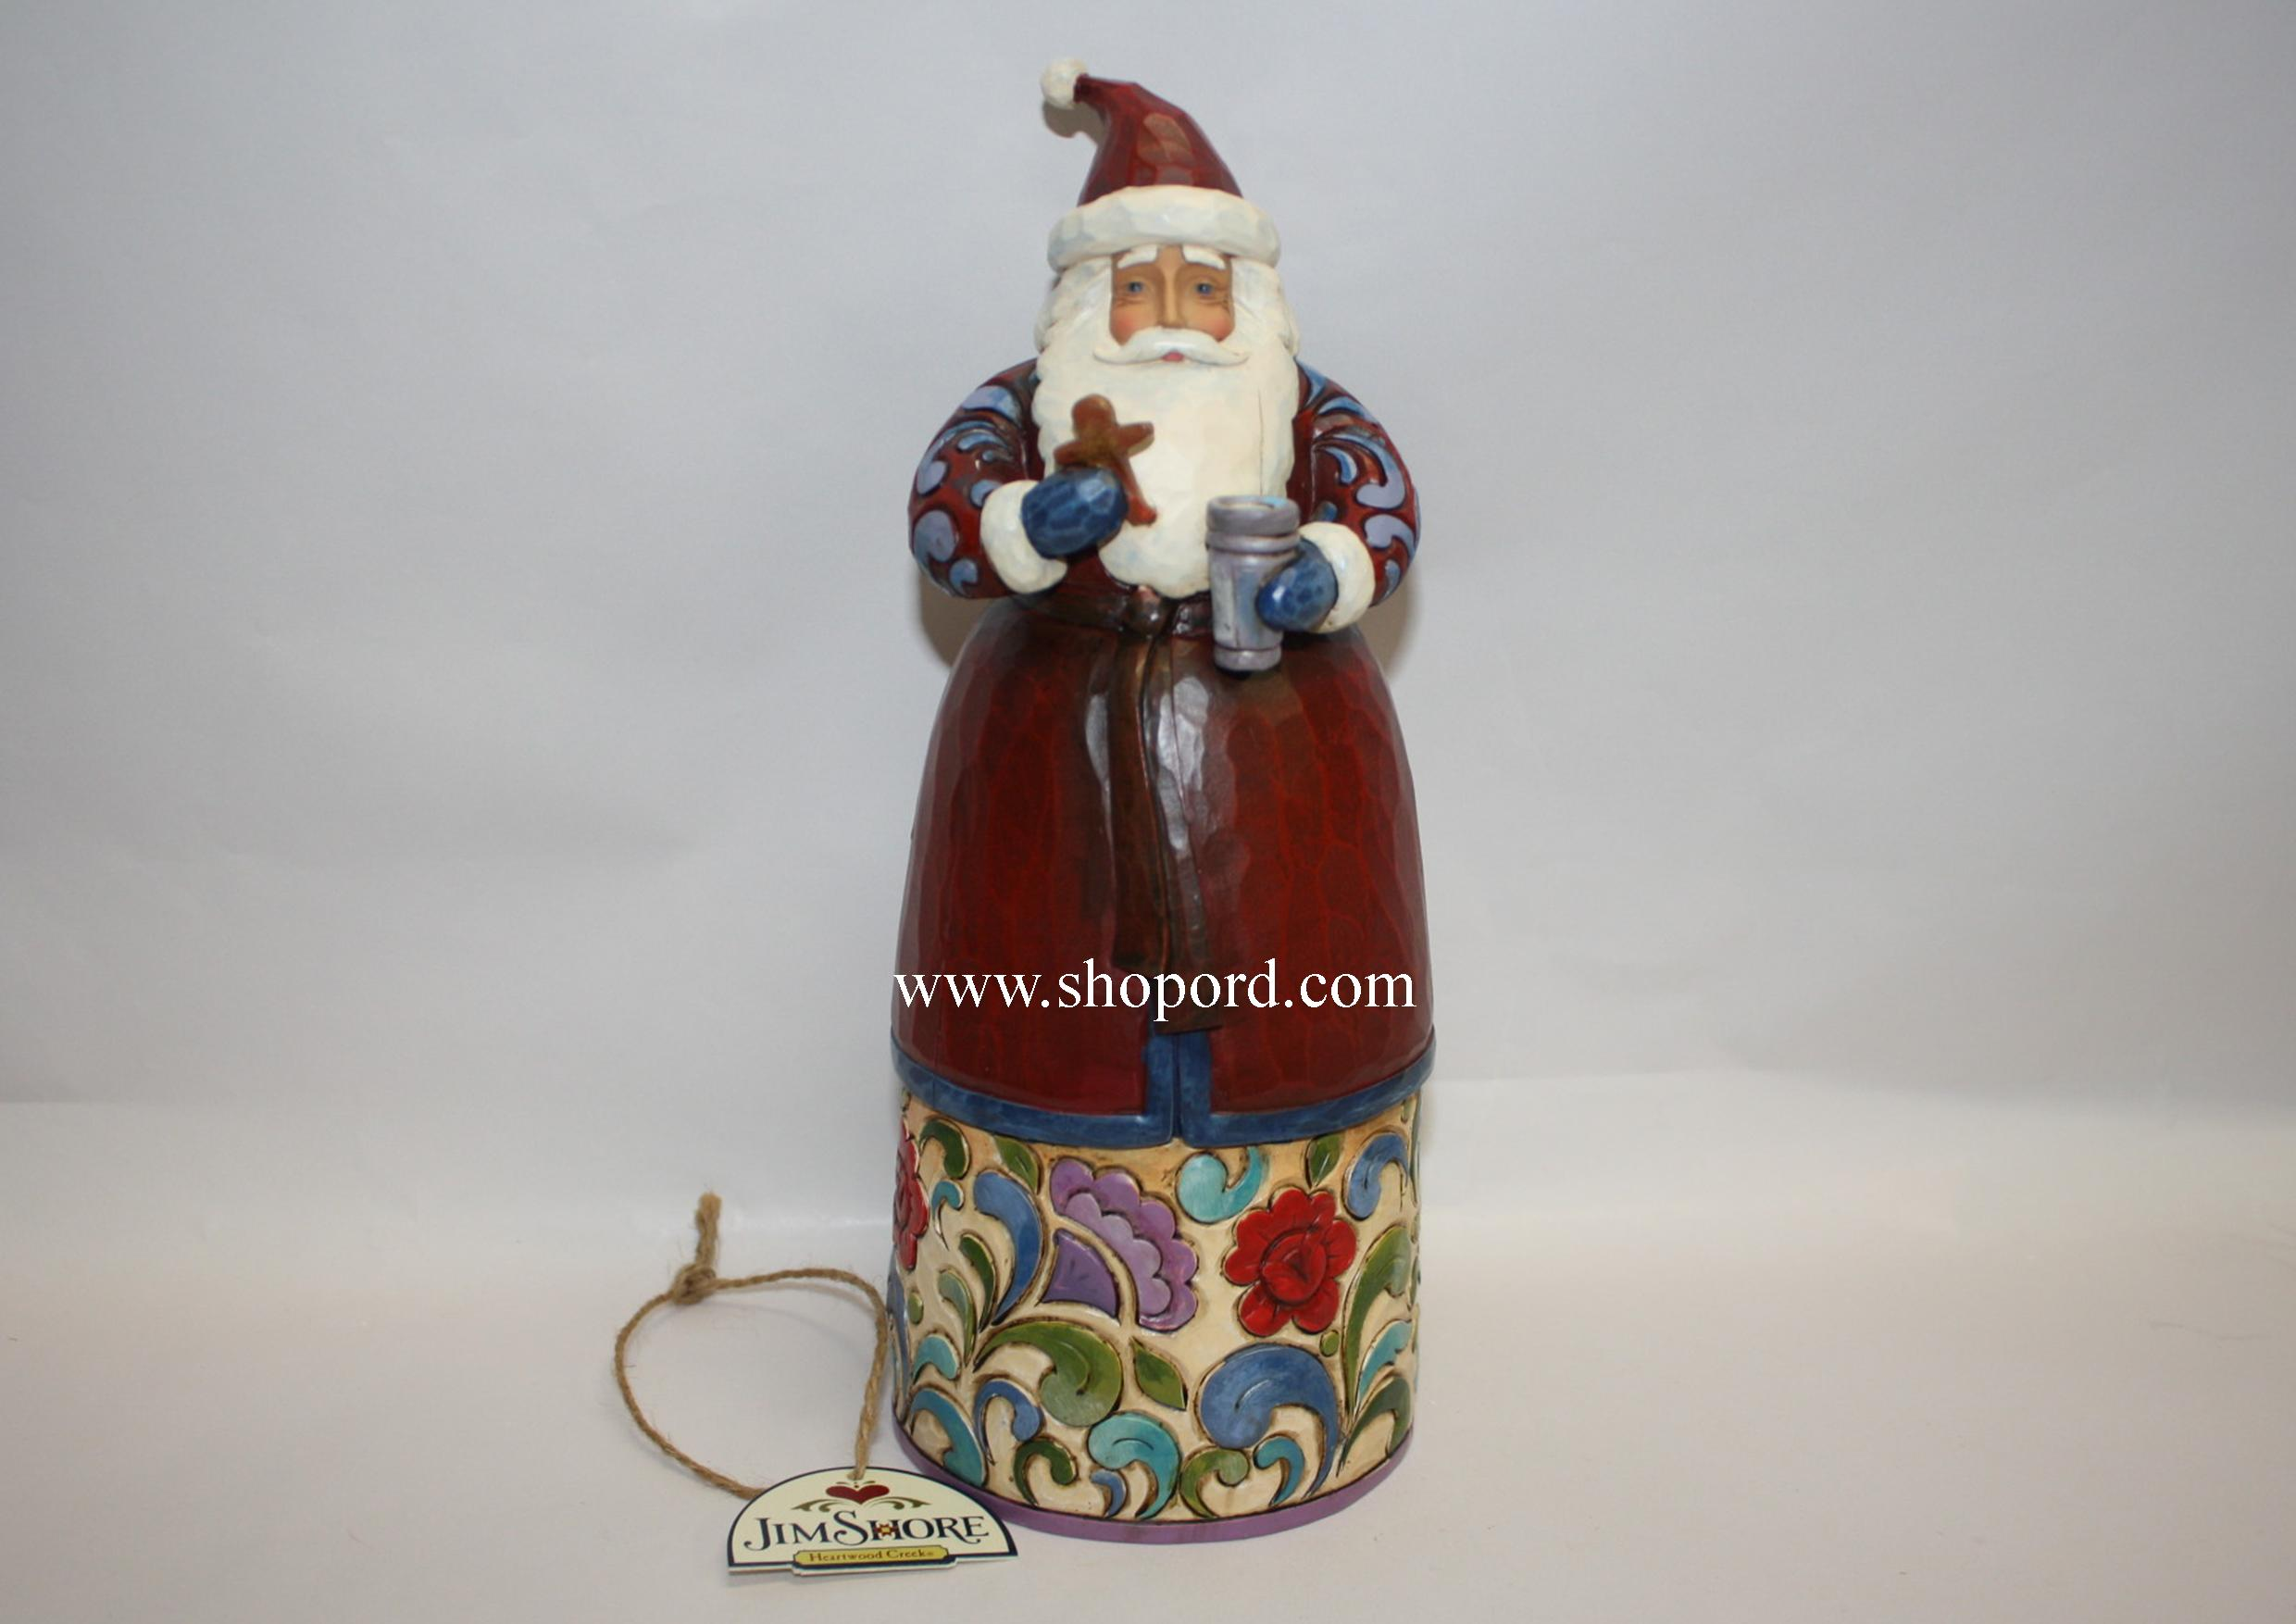 Jim Shore Sweet Greetings Santa with Milk and Cookie Figurine 4014449